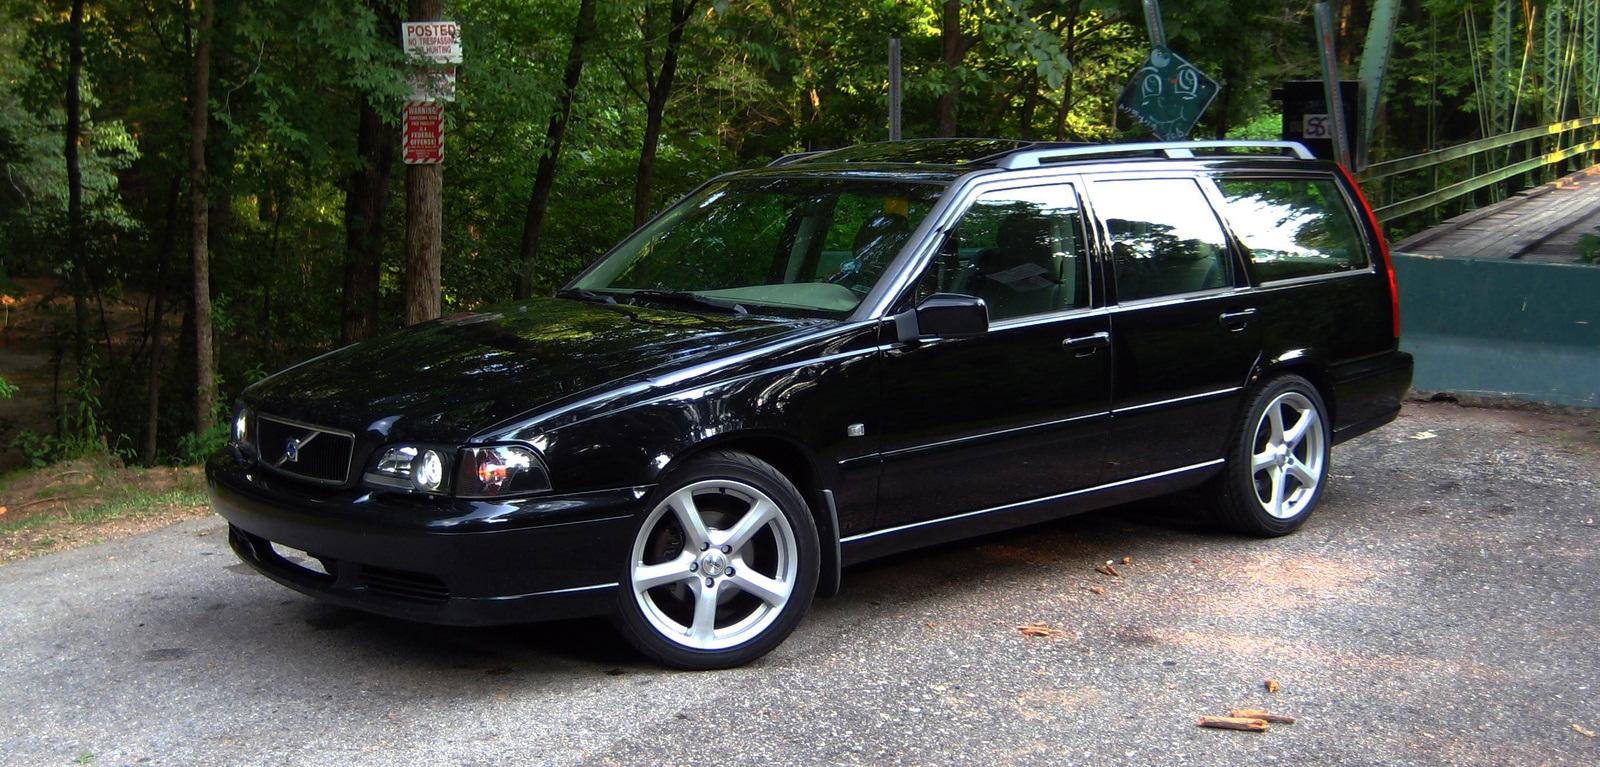 00' Volvo V70 with an LS1    - Volvo Forums